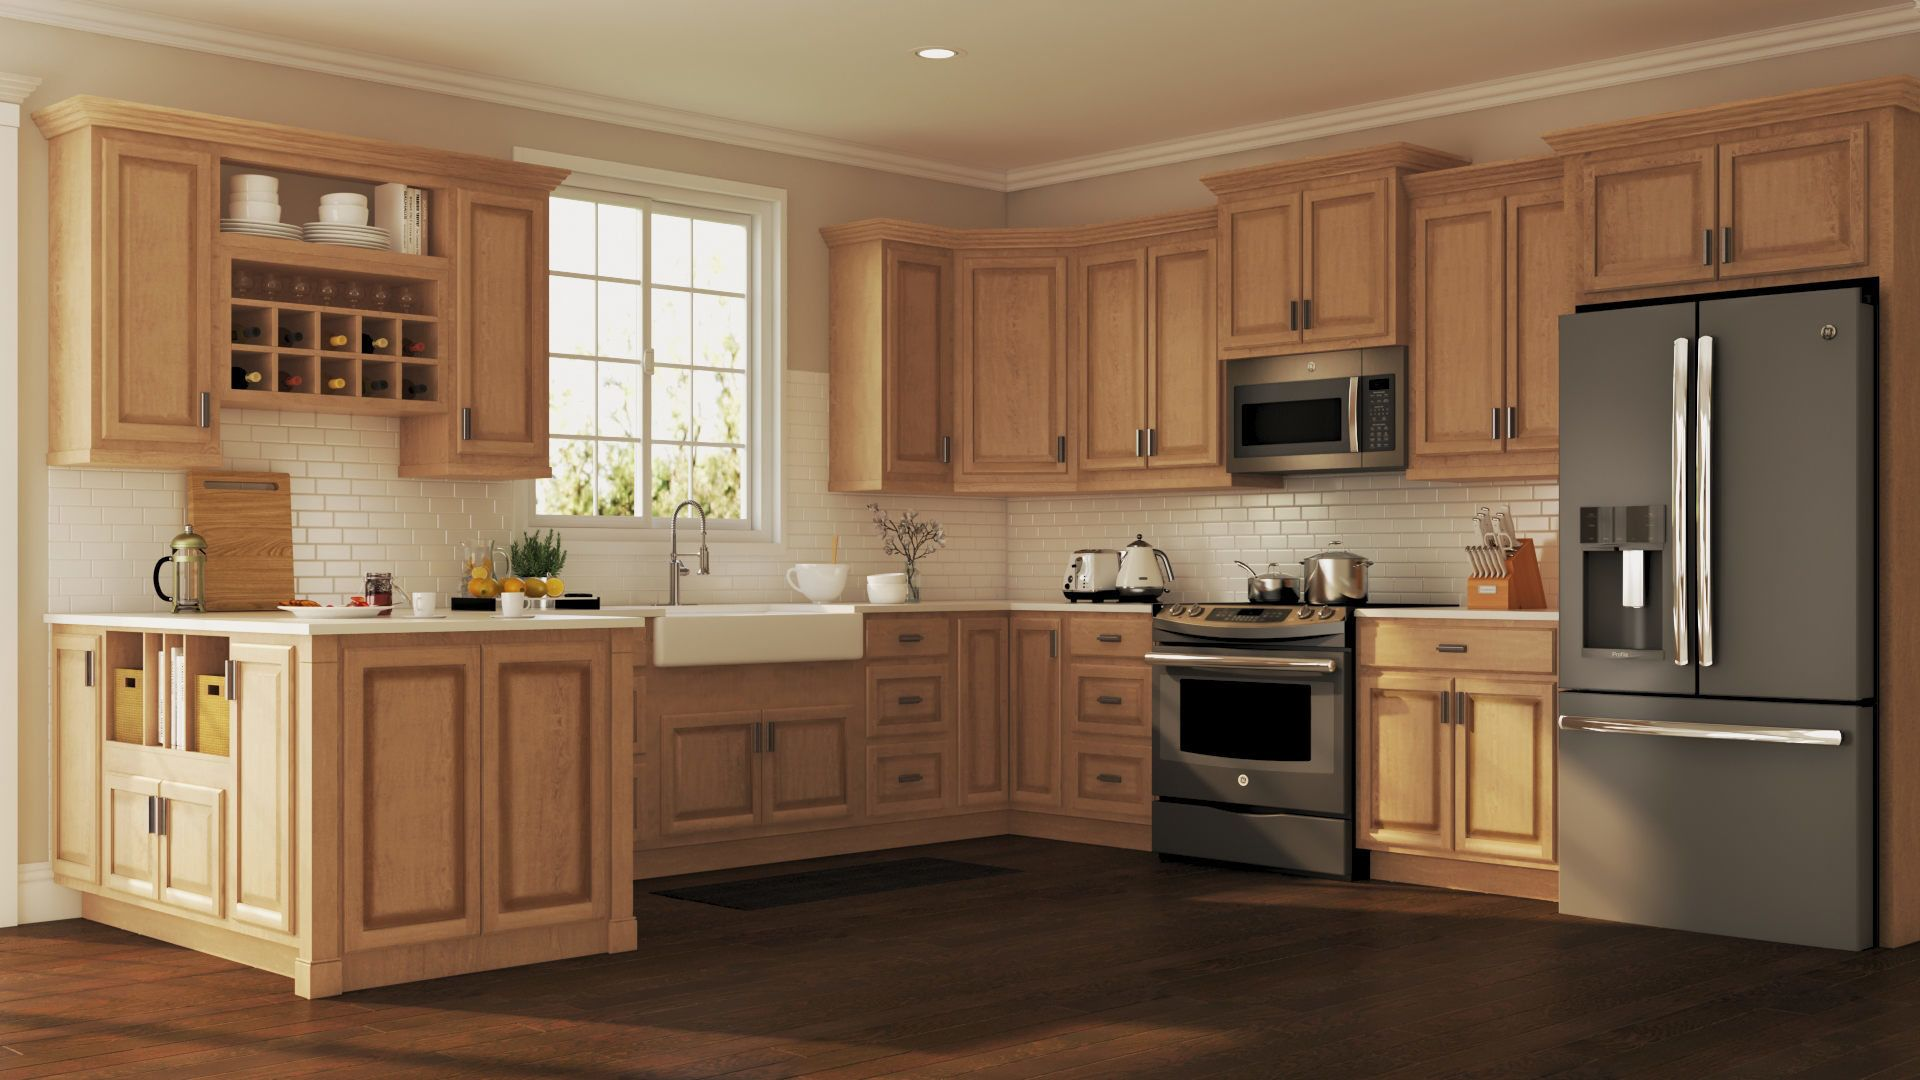 A Guide To Buying Used Kitchen Cabinets And Saving Money Used